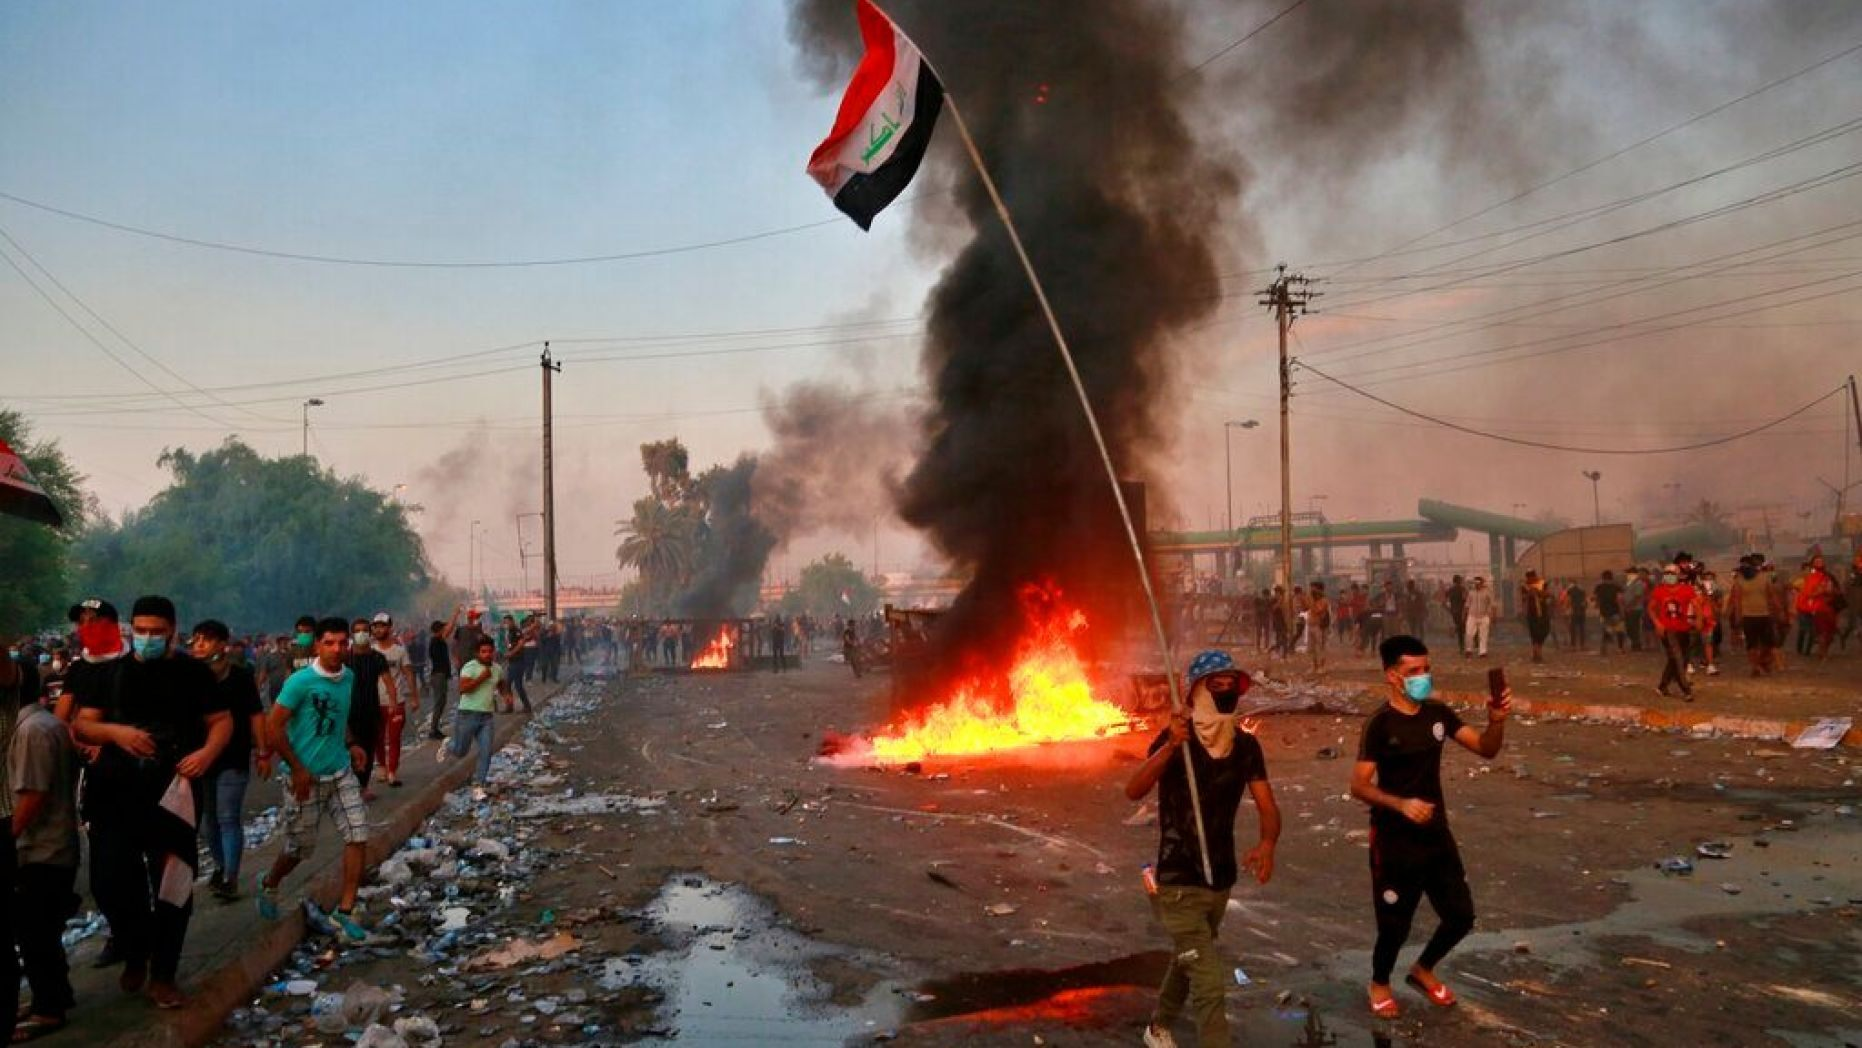 Anti-government protesters set fires and close a street during a demonstration in Baghdad, Iraq, Thursday, Oct. 3, 2019.